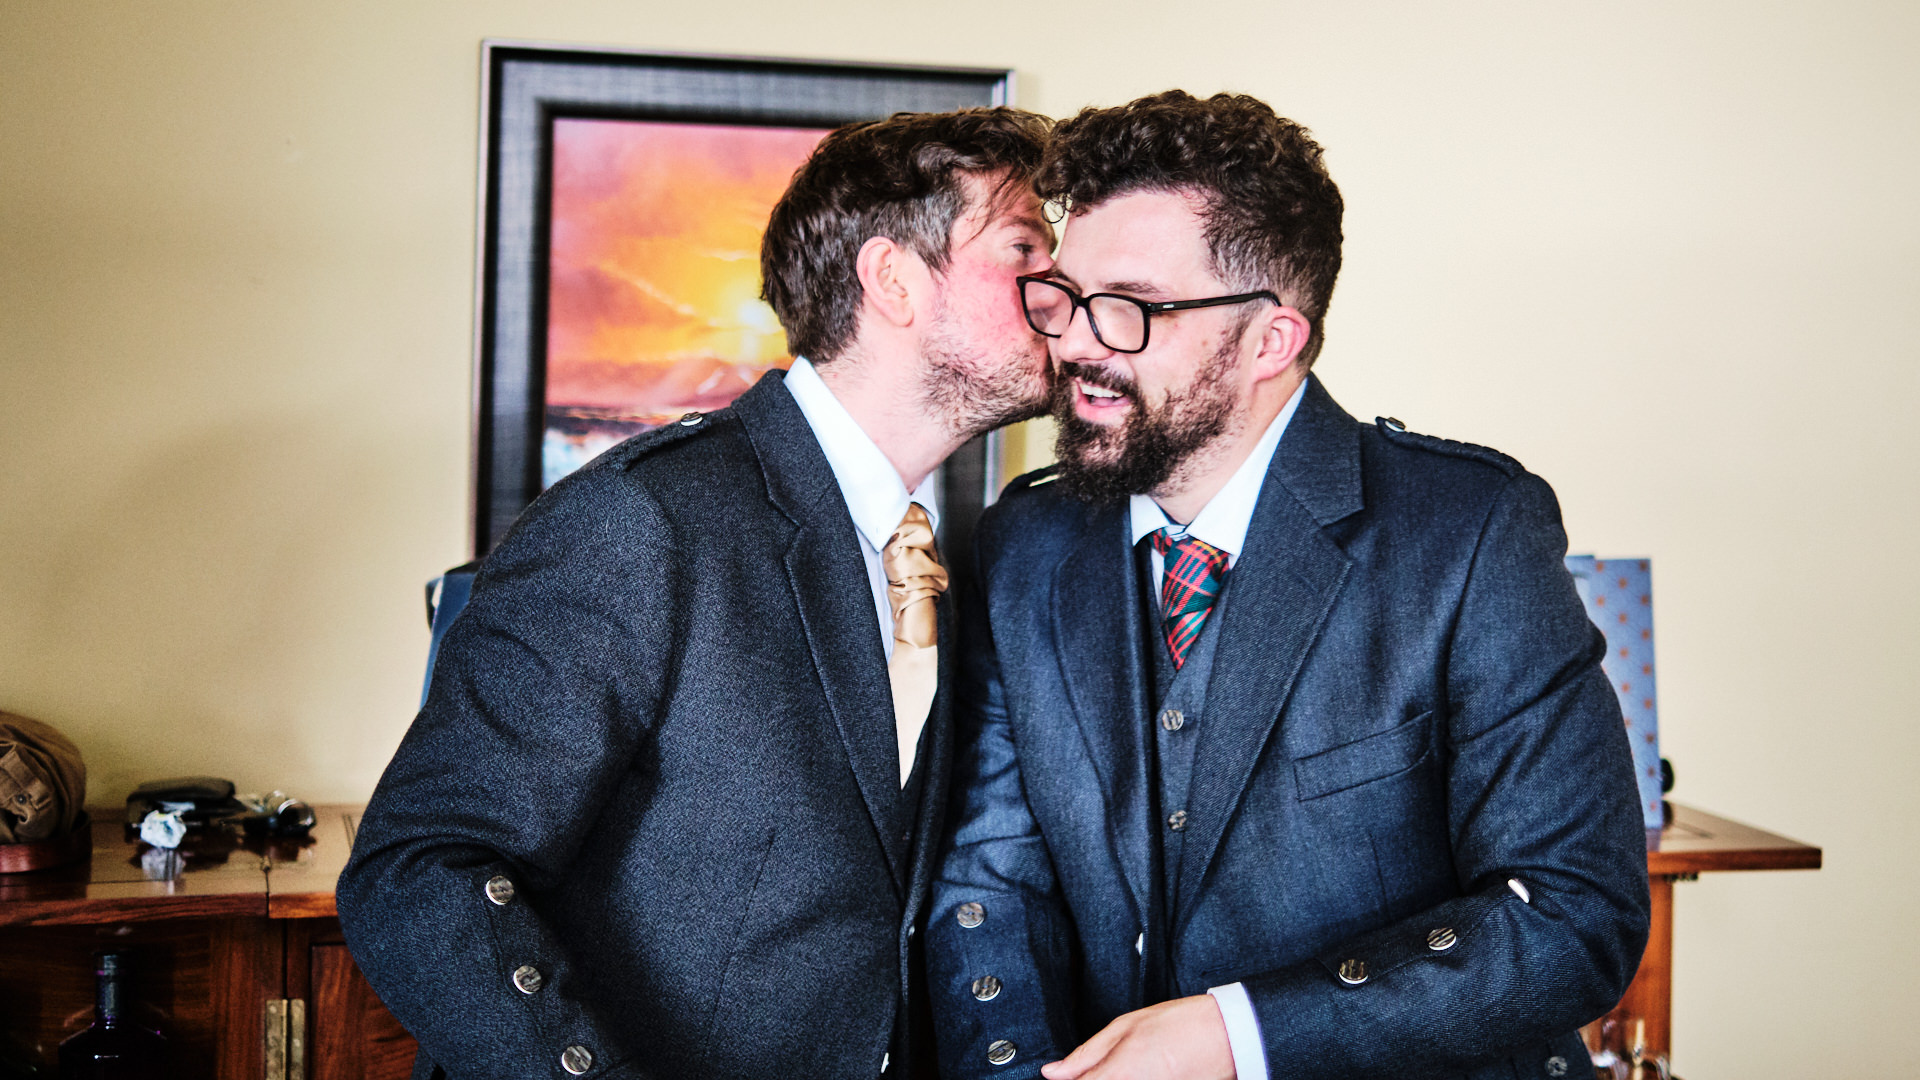 a colour photograph of the best man giving the bridegroom a kiss open the cheek as they are getting ready for the wedding day